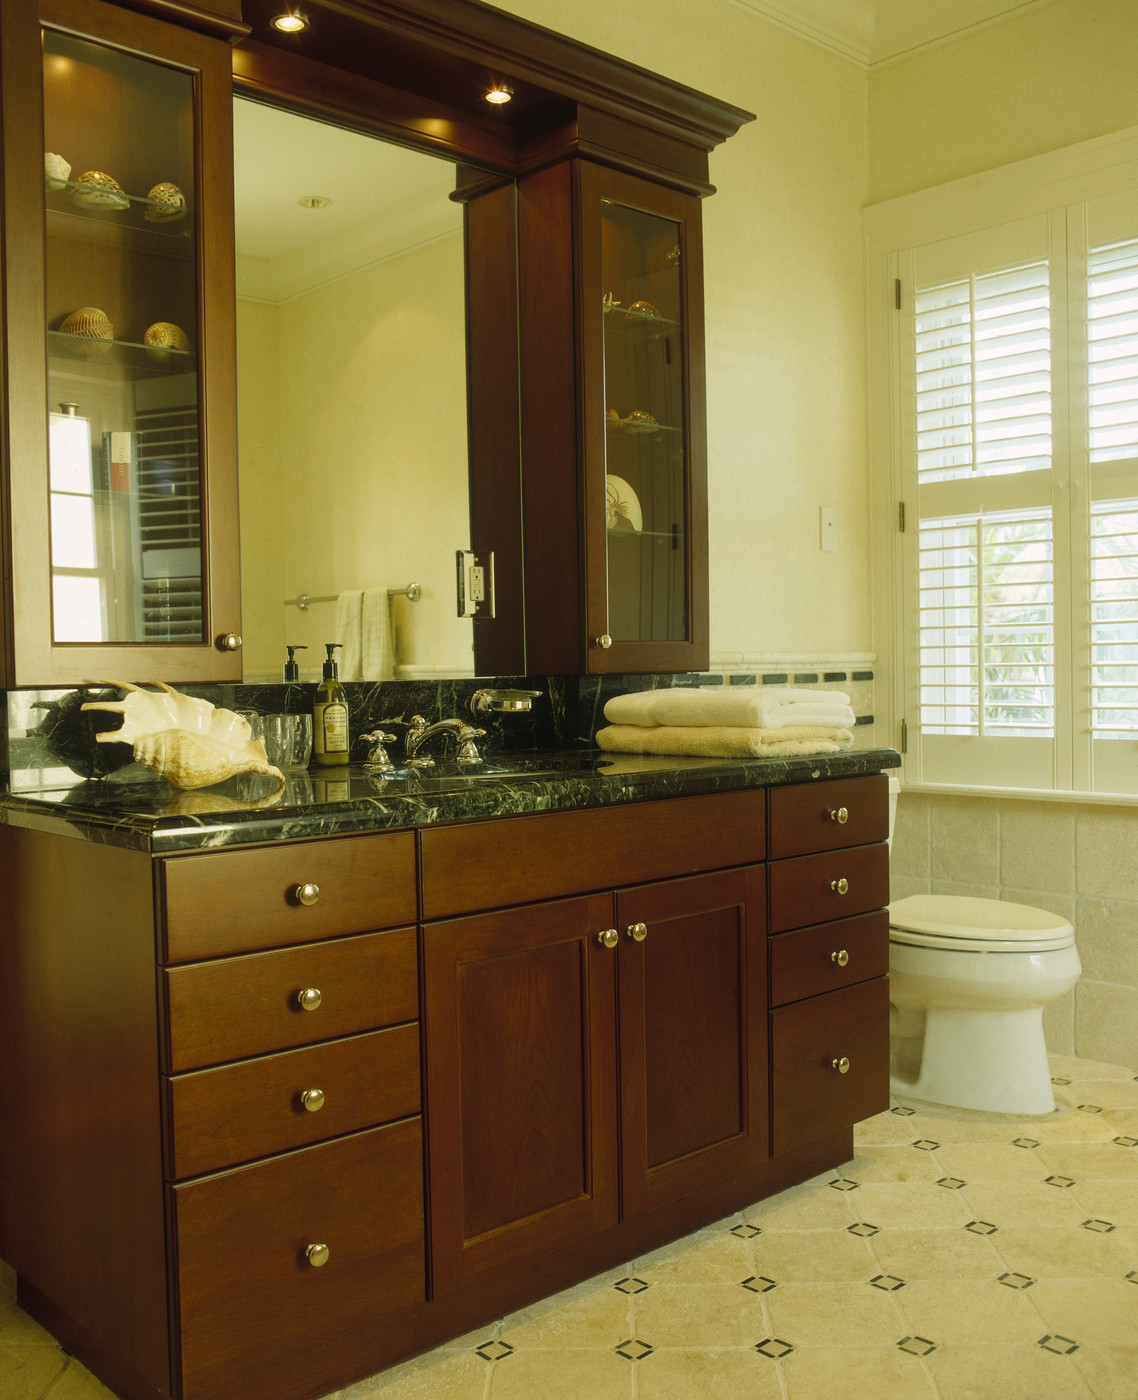 Large Wooden Vanity Unit Photos Design Ideas Remodel